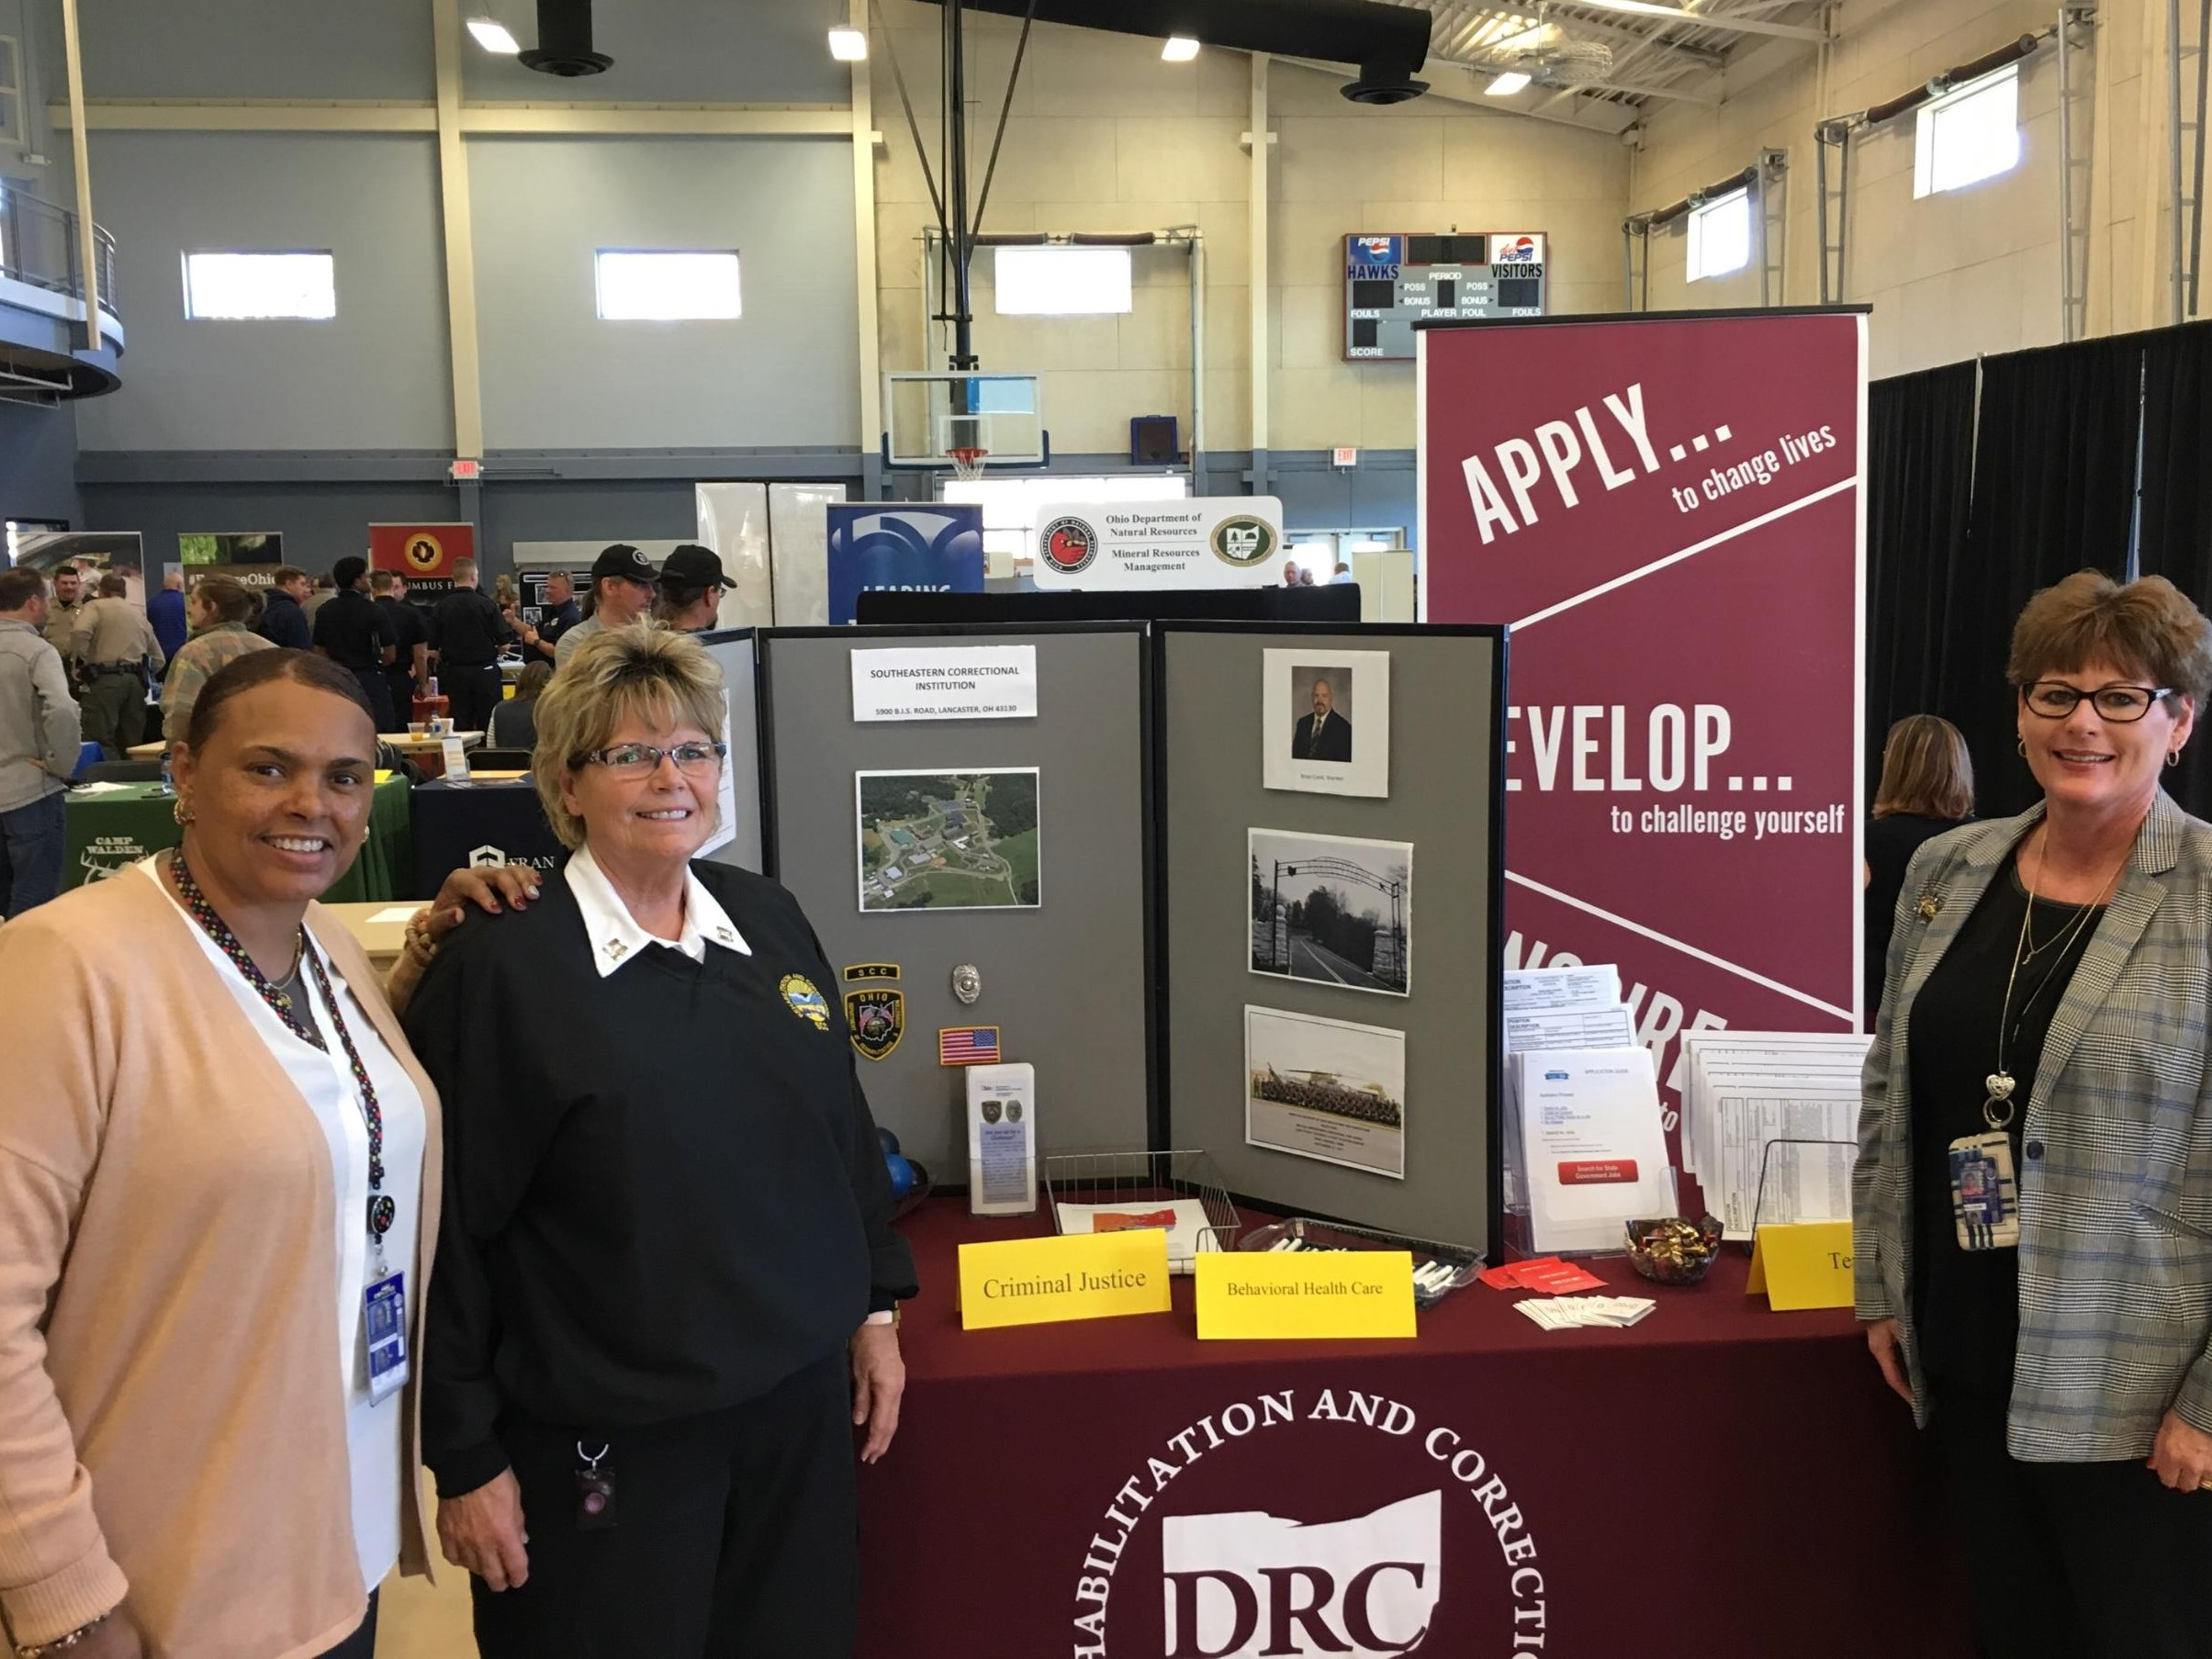 SCI Attends Career Fair at Hocking College